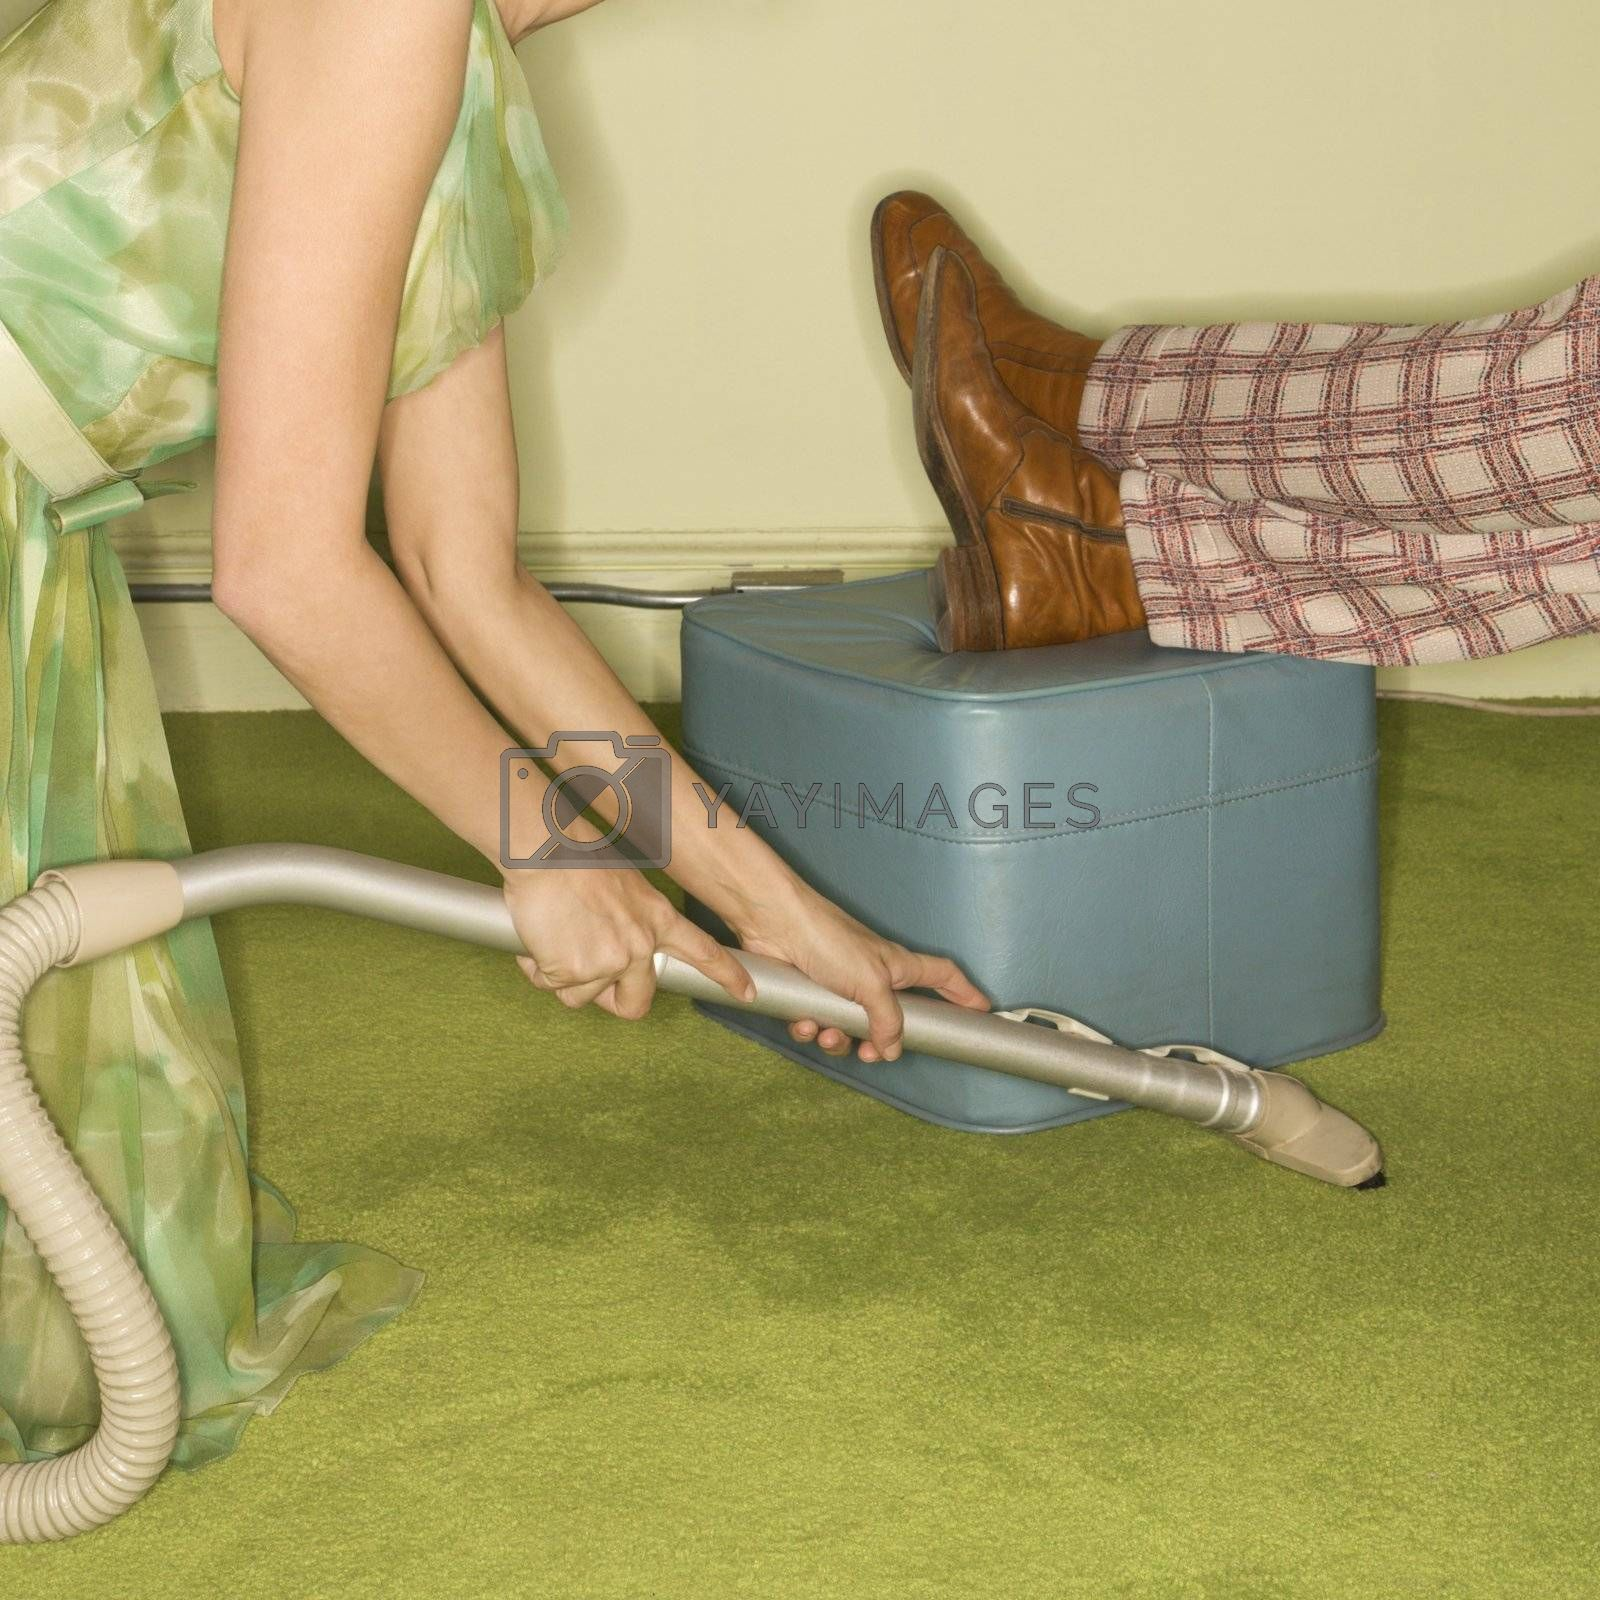 Caucasian mid-adult woman kneeling and vaccuuming carpet around male feet resting on foot stool.